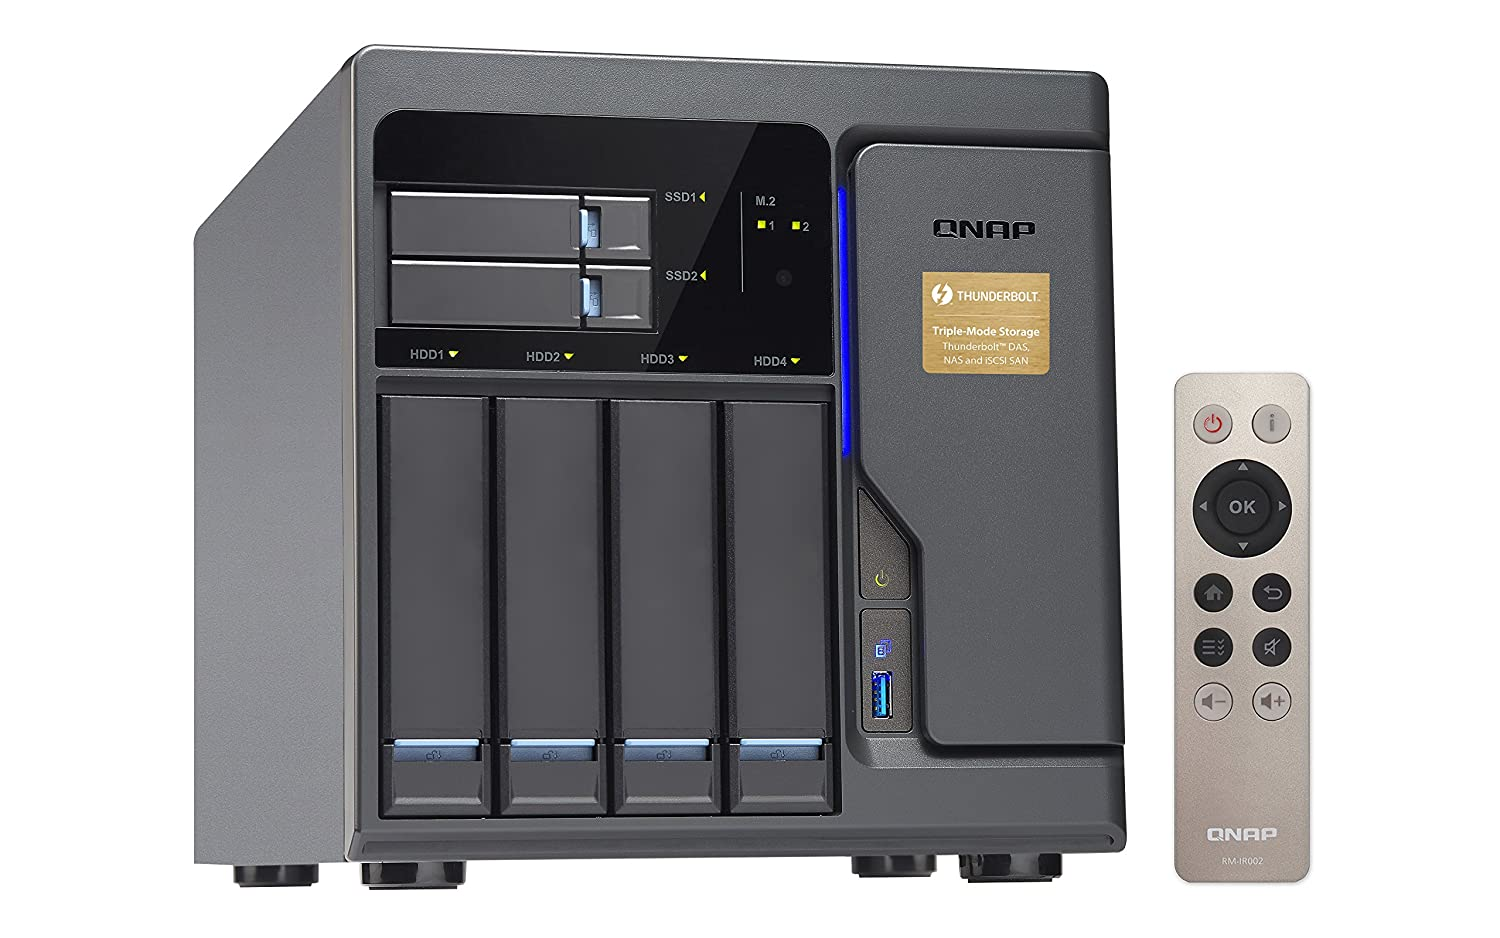 QNAP TVS-682T Thunderbolt 4-Bay Network Attached Storage Enclosure with  Intel i3 Processor and 8 GB RAM